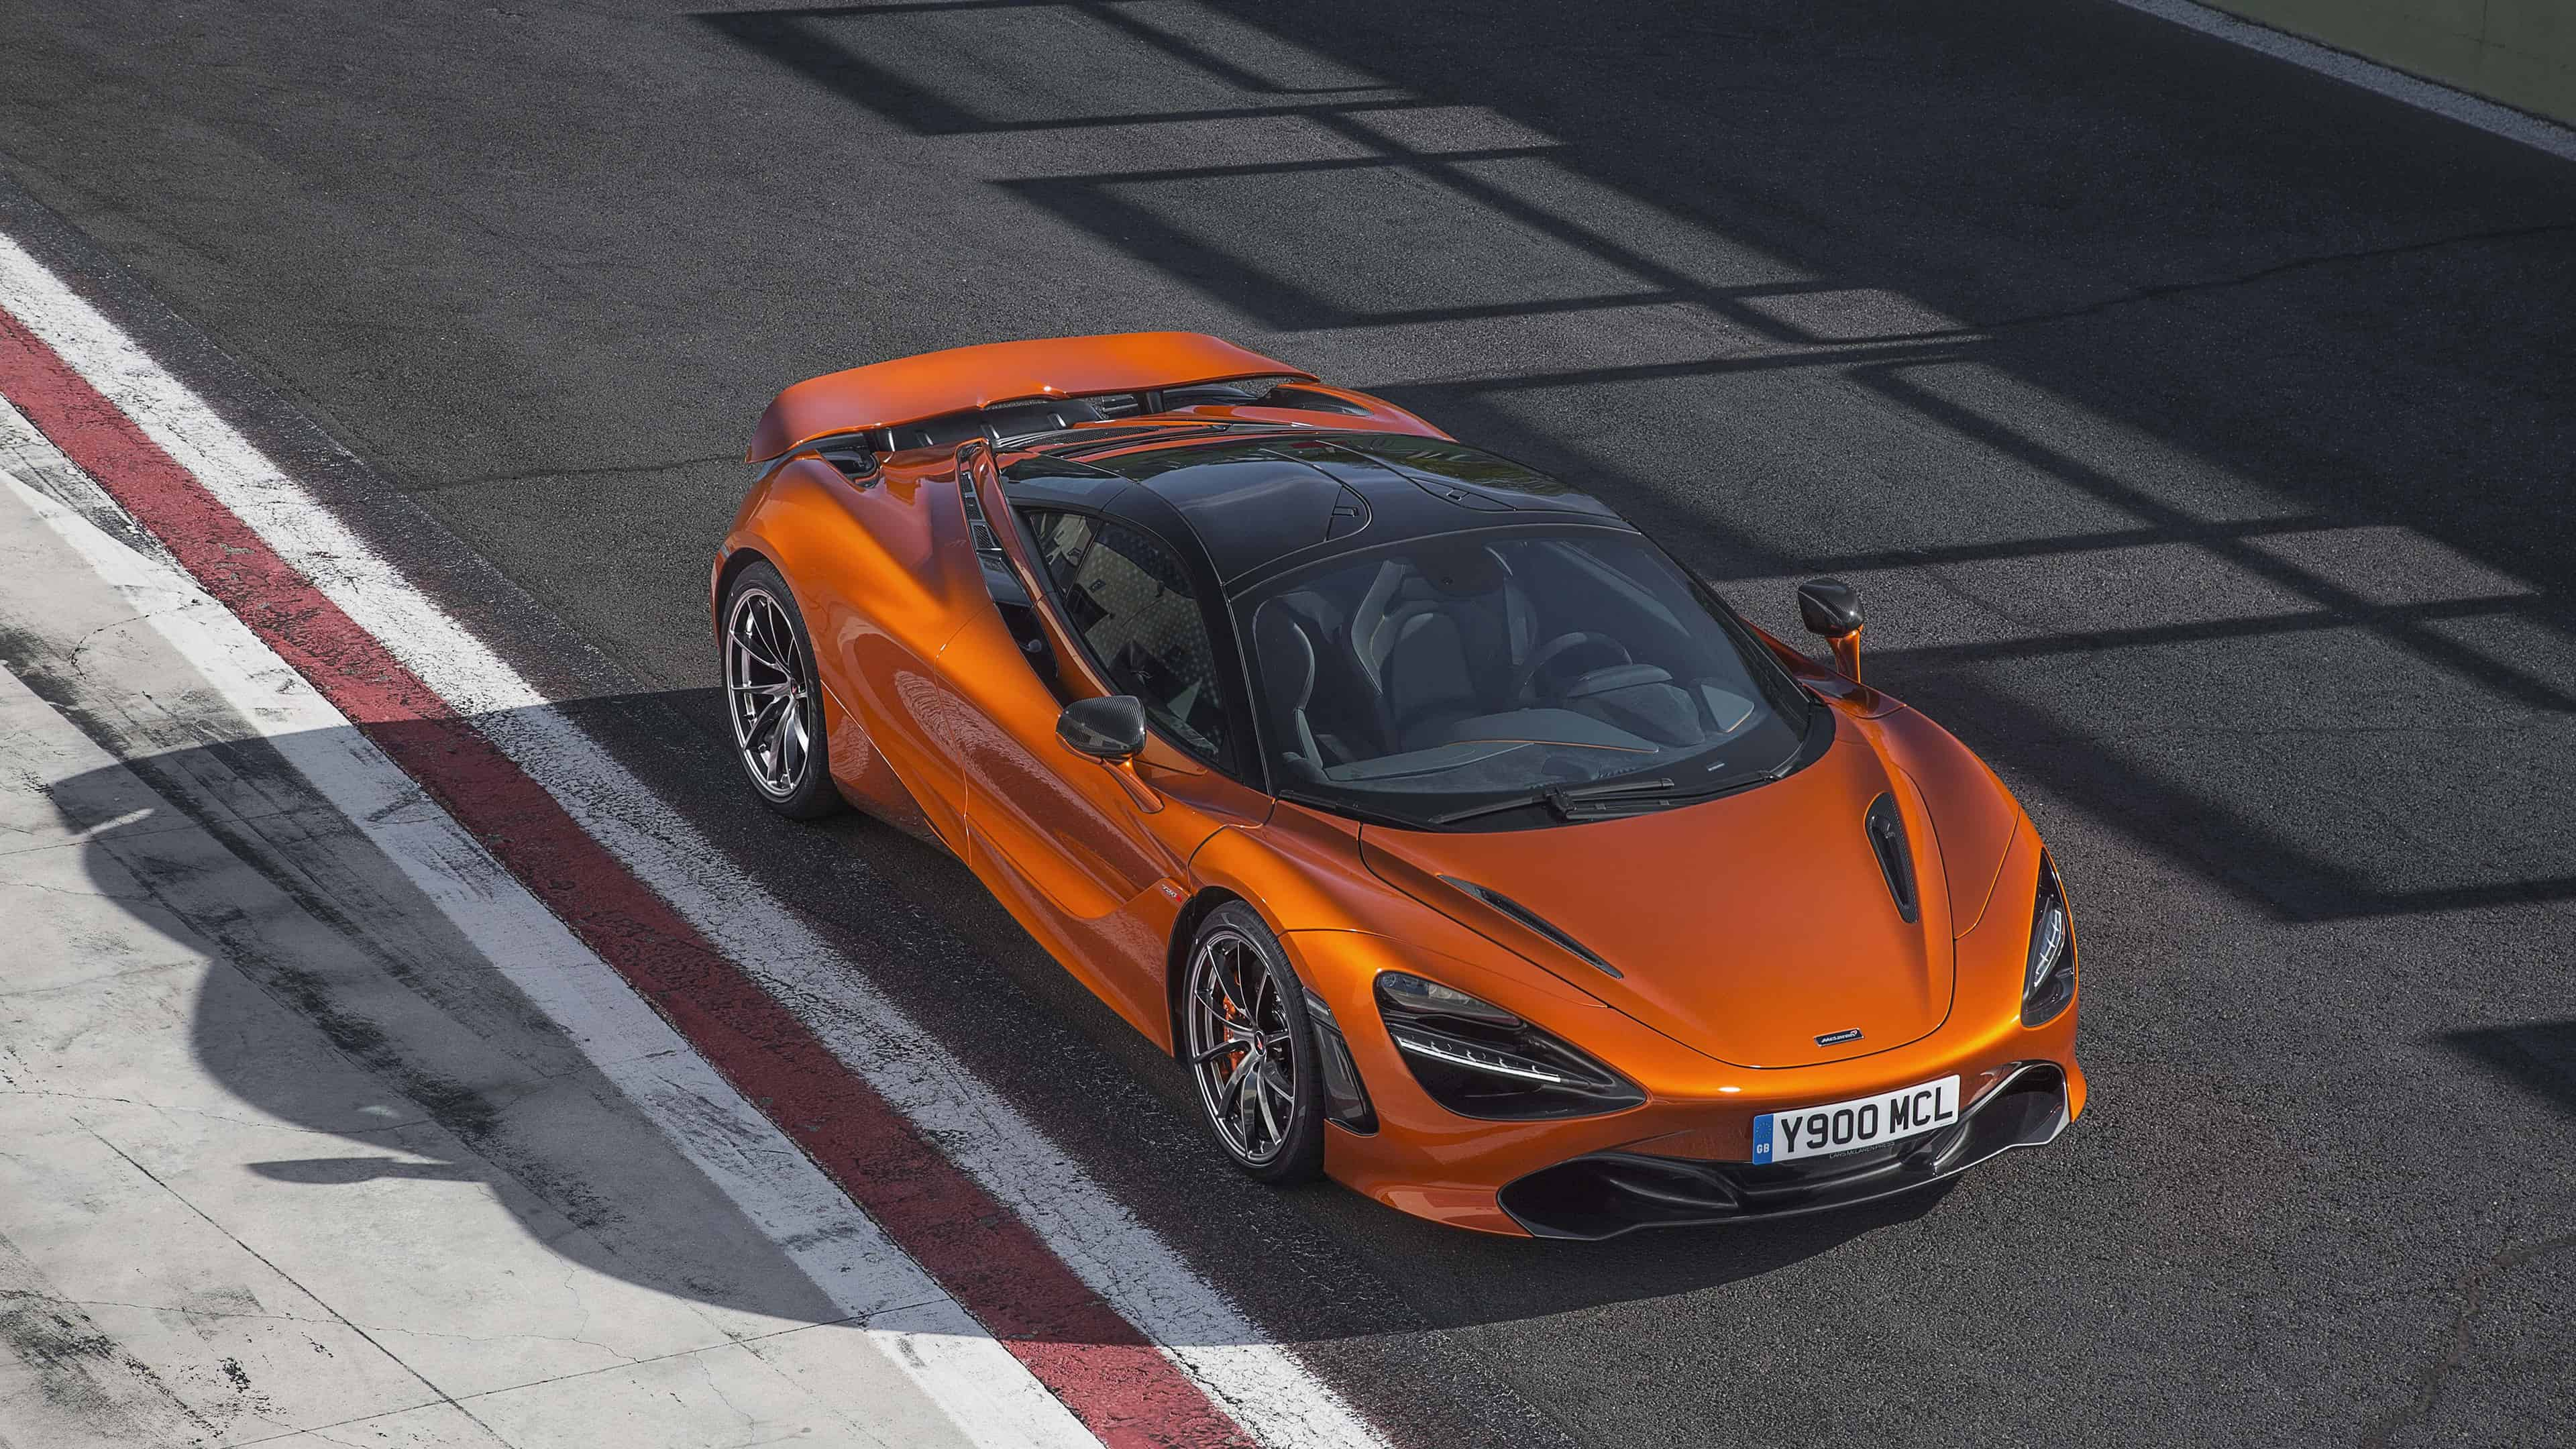 mclaren 720s orange uhd 4k wallpaper